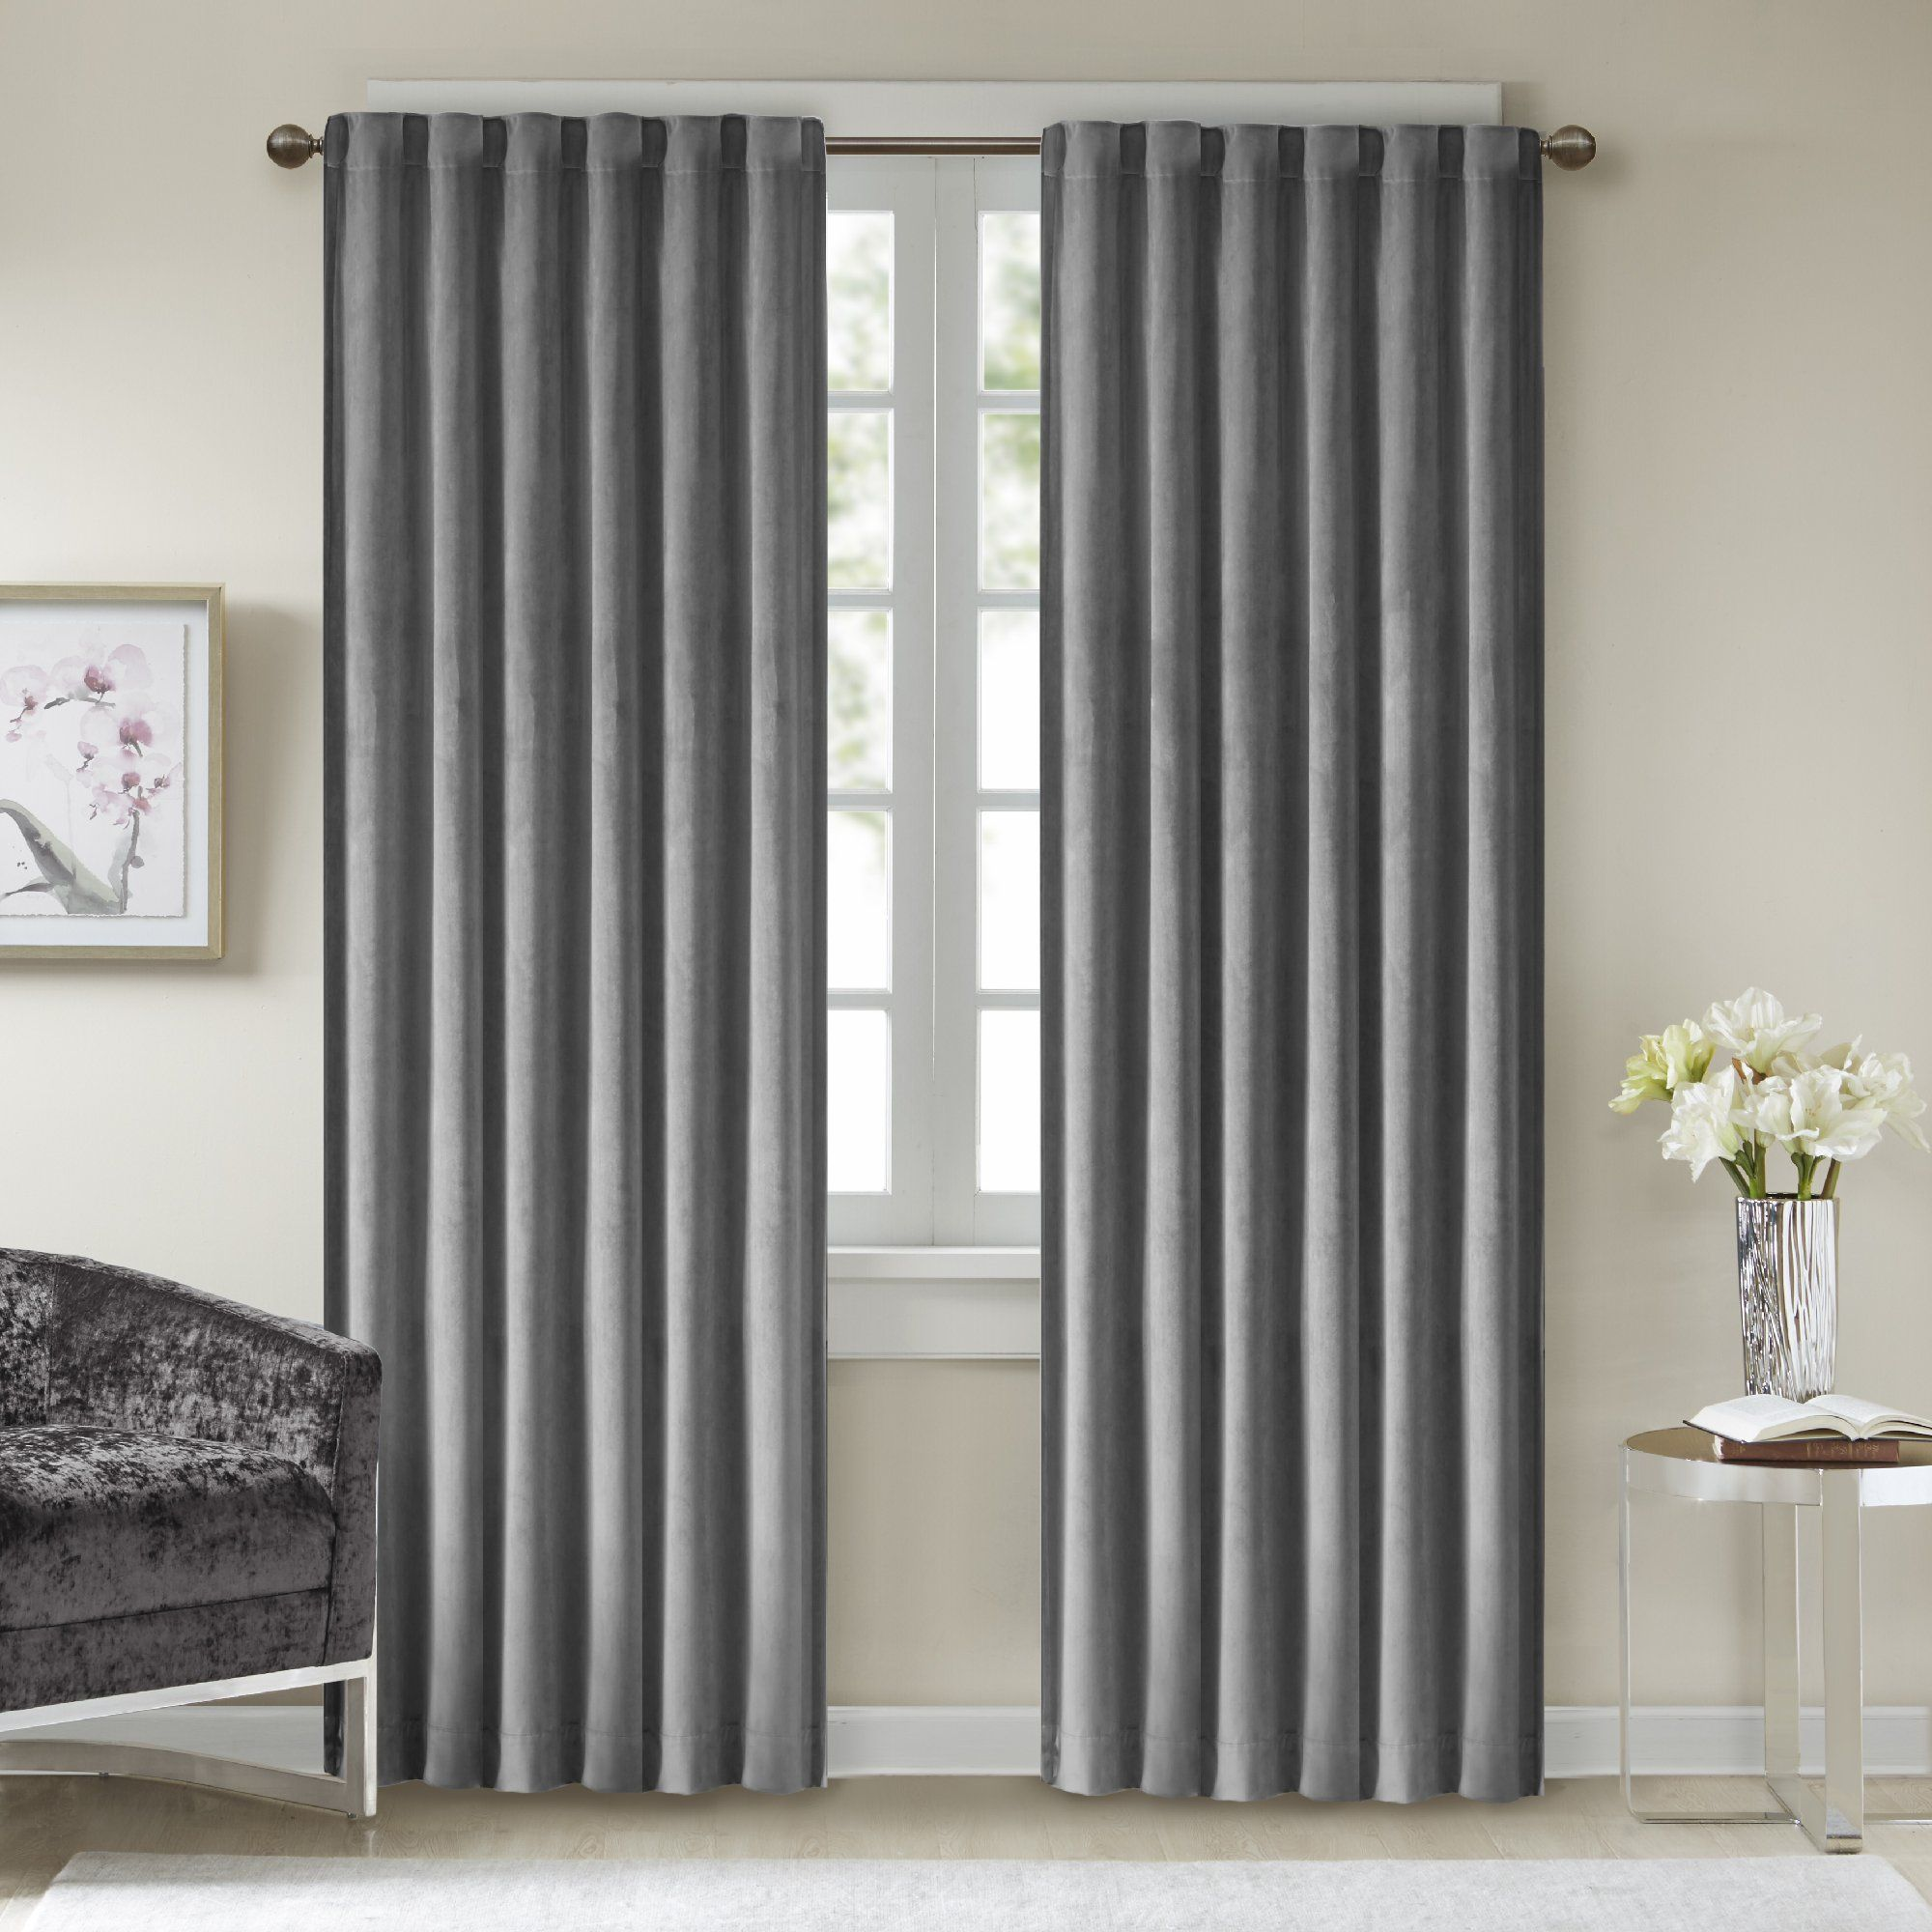 panel grommet curtains mainstays helix curtain blackout ip walmart com efficient energy